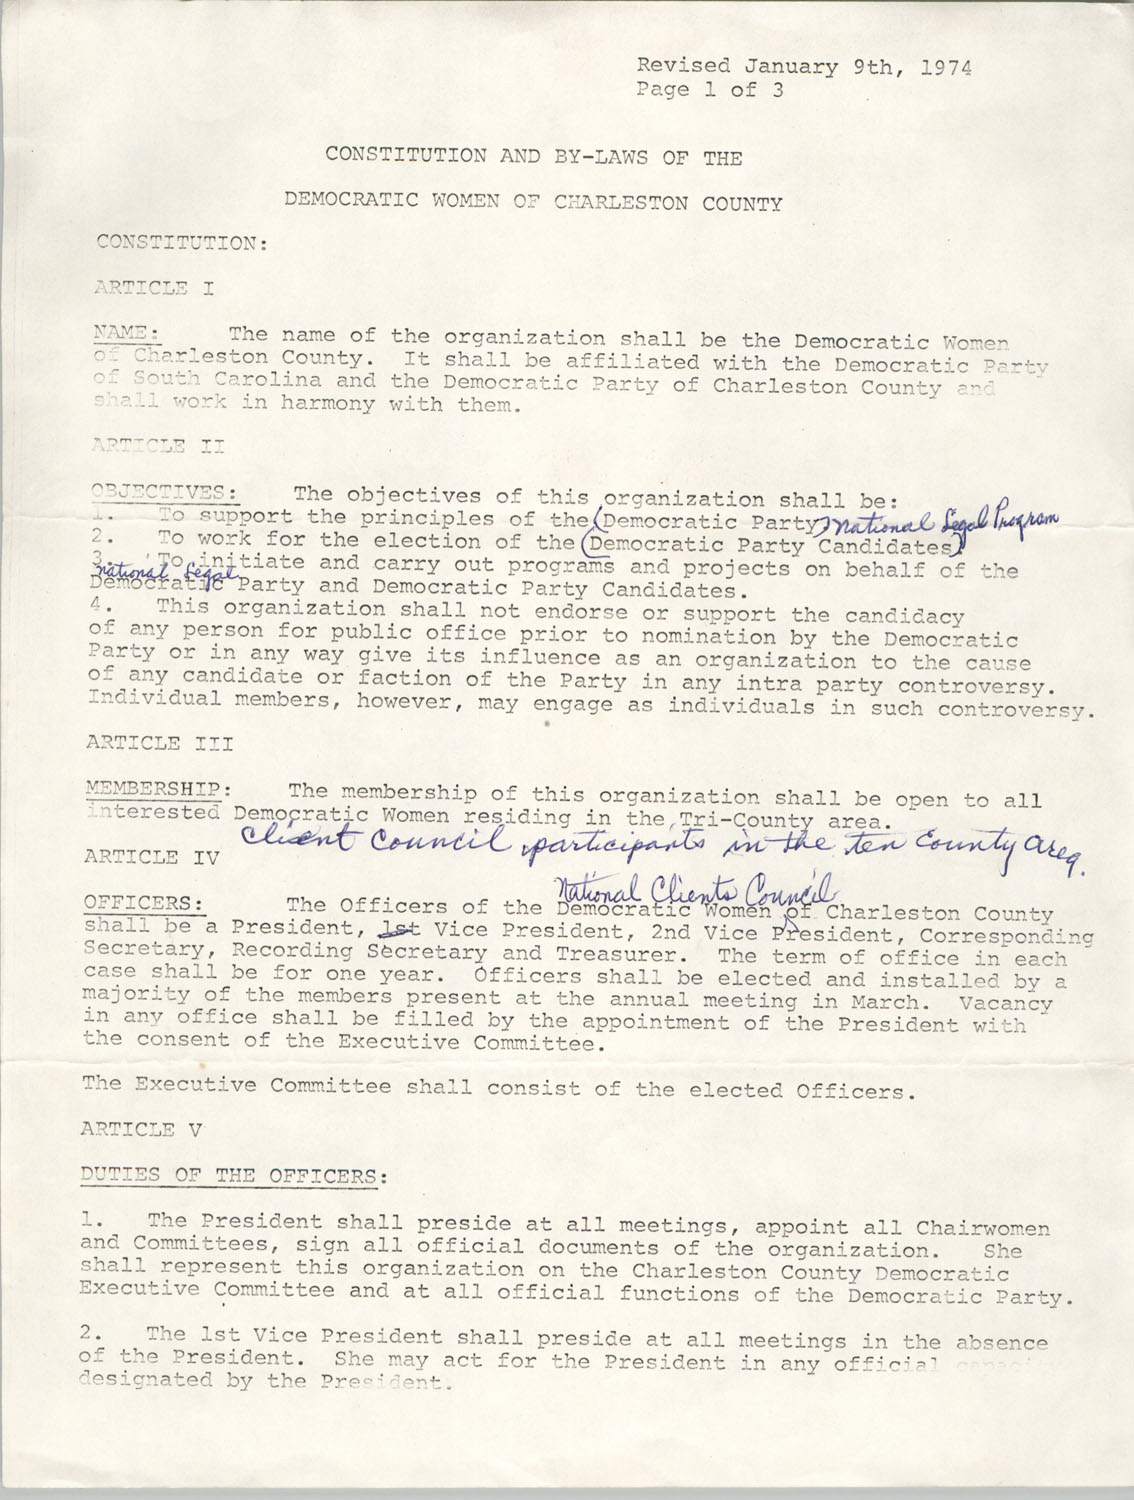 Constitution and By-Laws of the Democratic Women of Charleston County, January 9, 1974